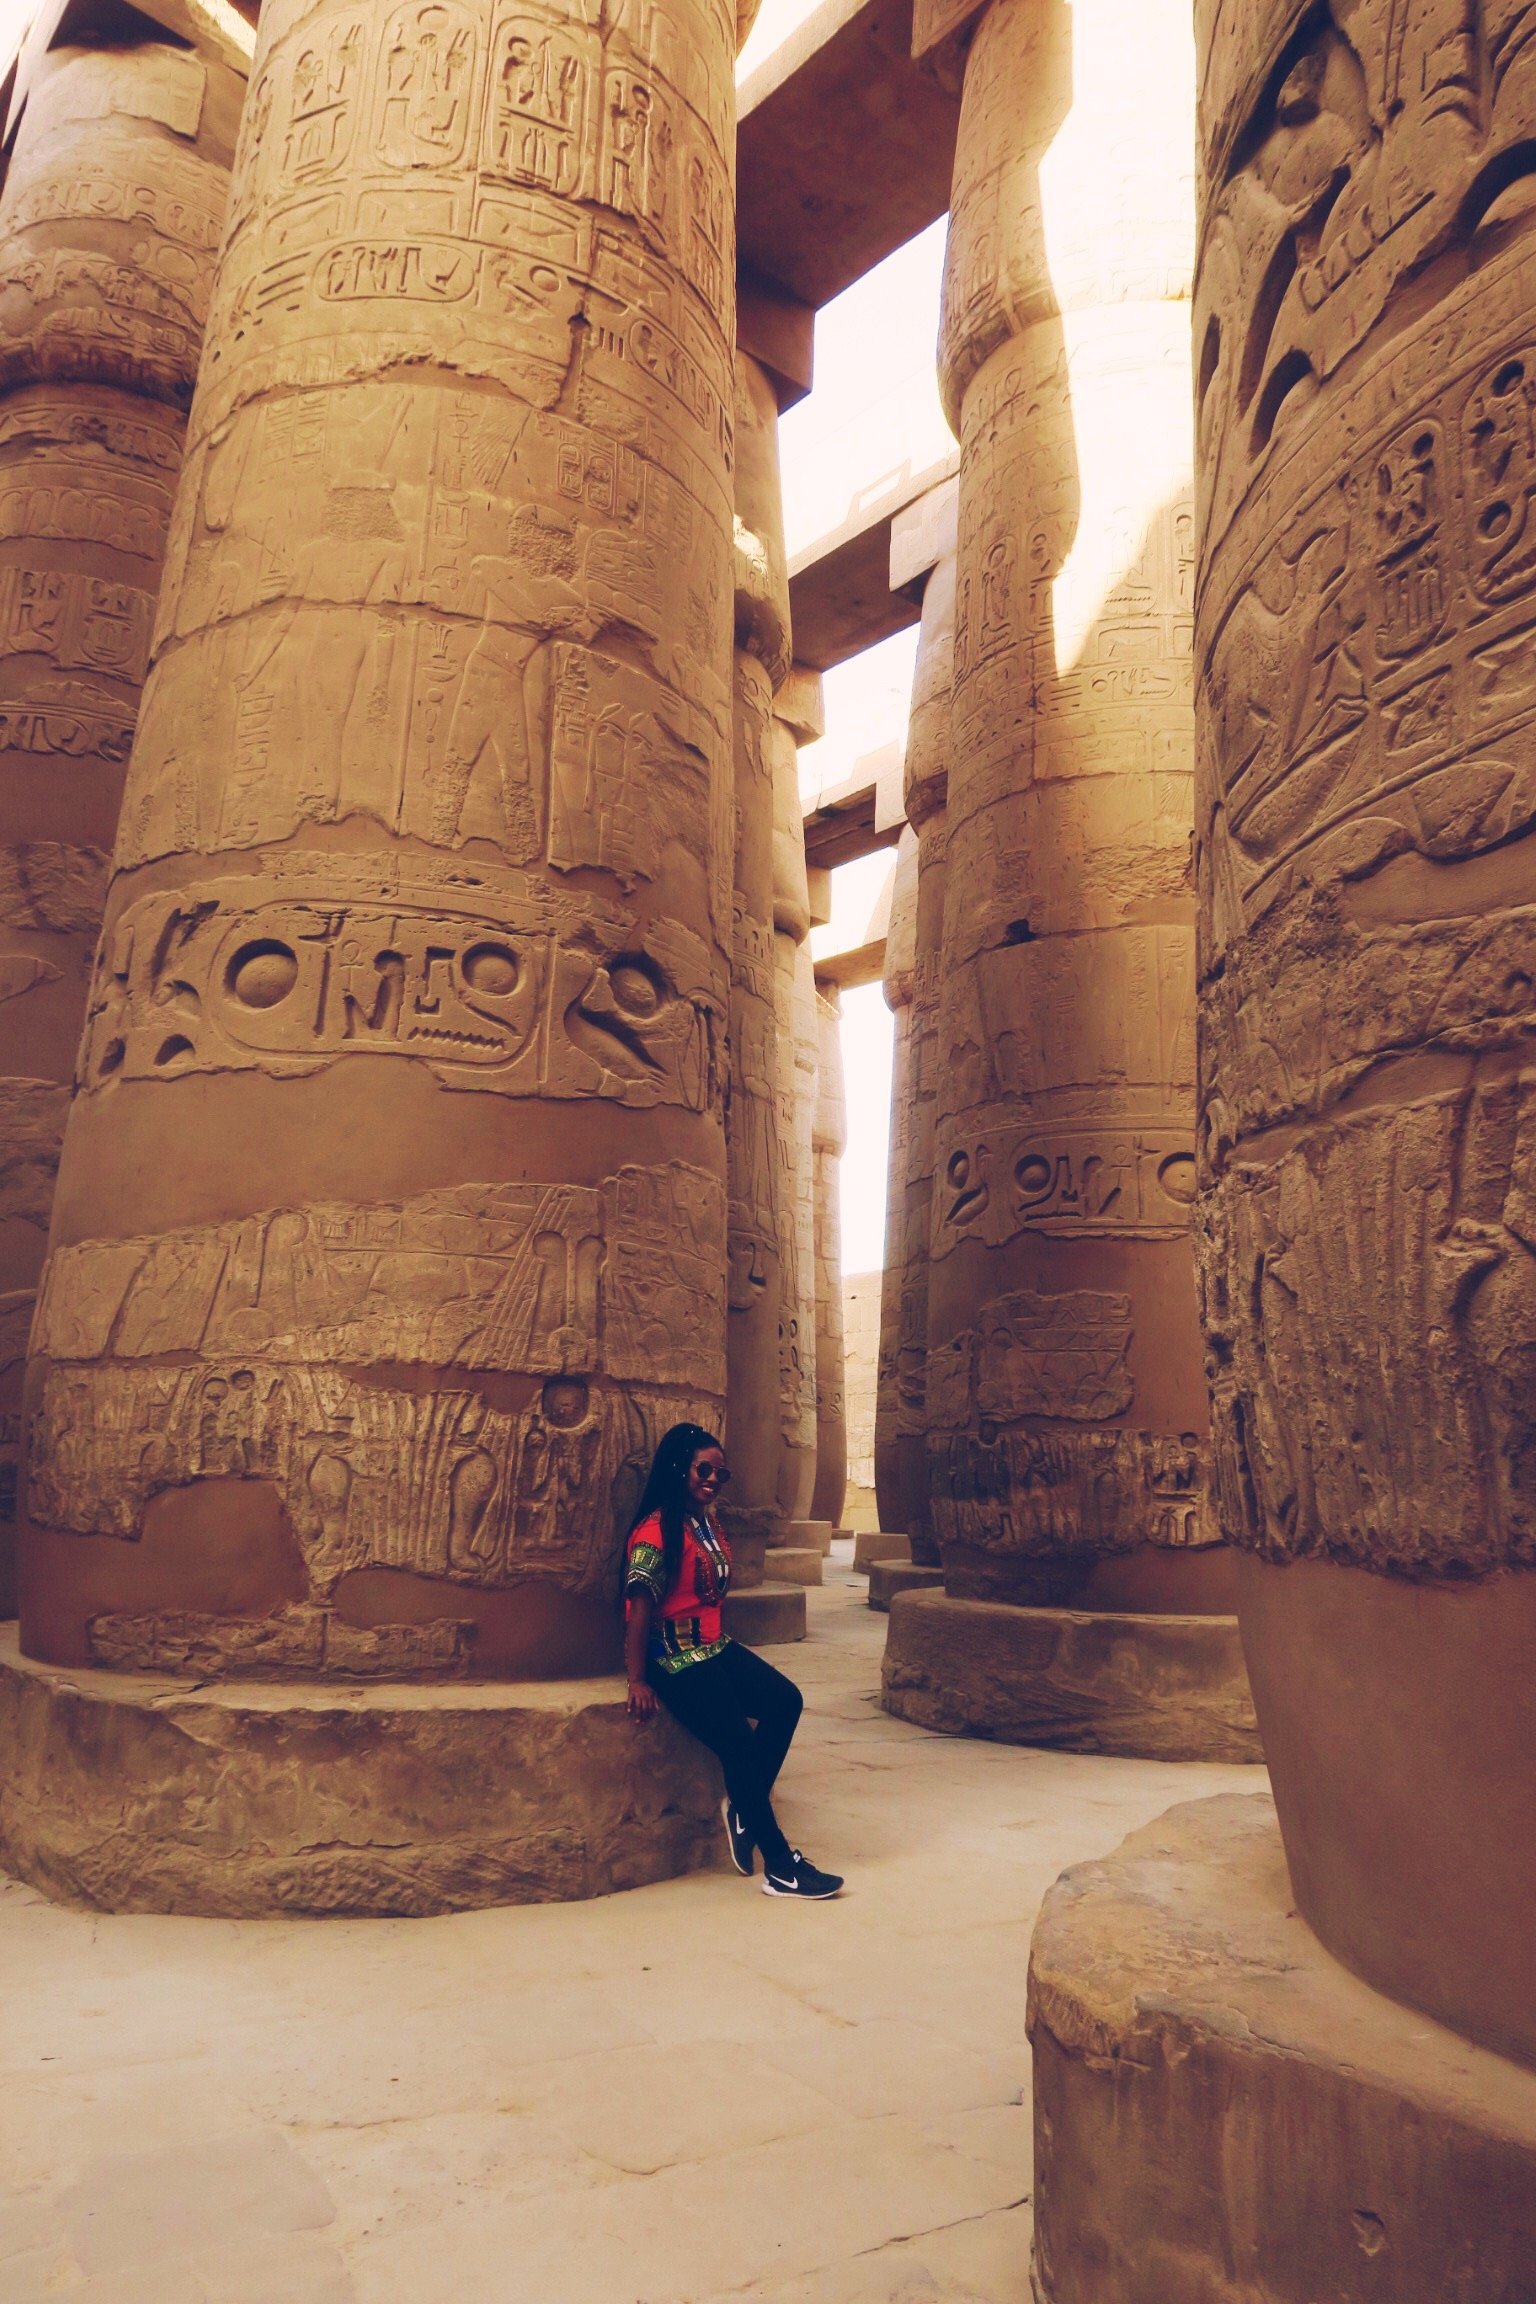 Photo Taken by Ahmed Founder of Luxor For You.